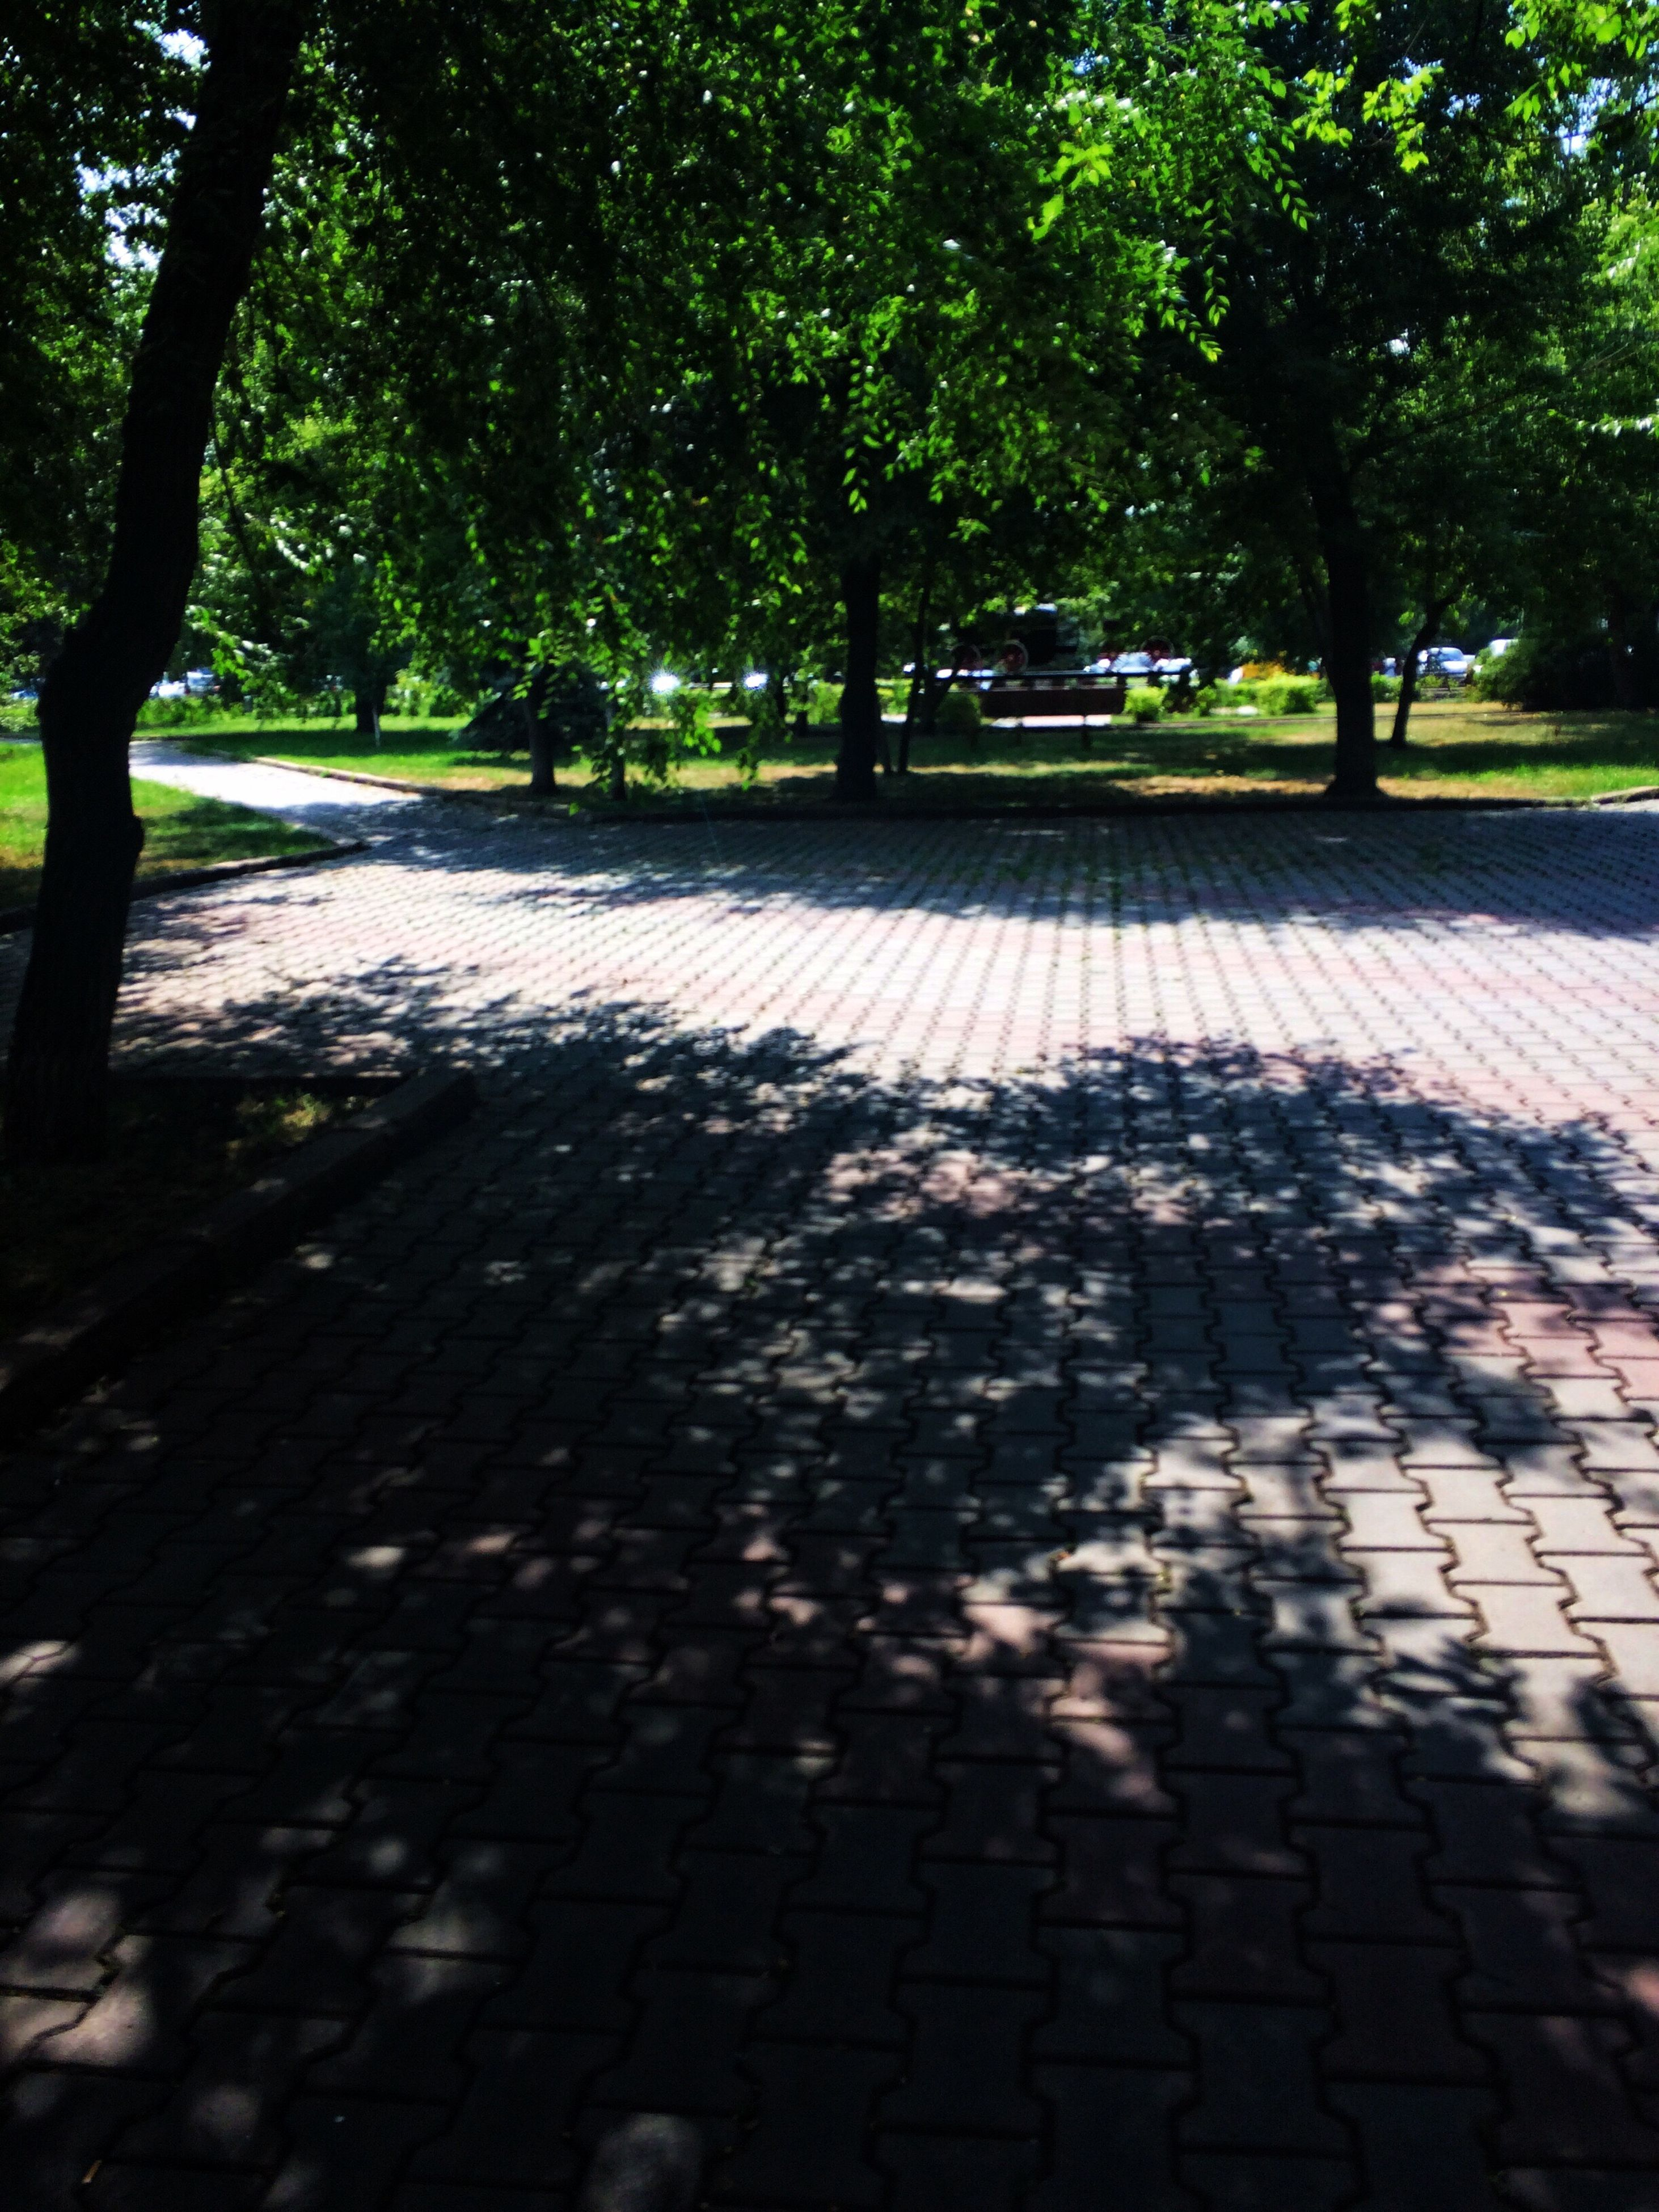 tree, shadow, outdoors, nature, sunlight, day, no people, growth, road